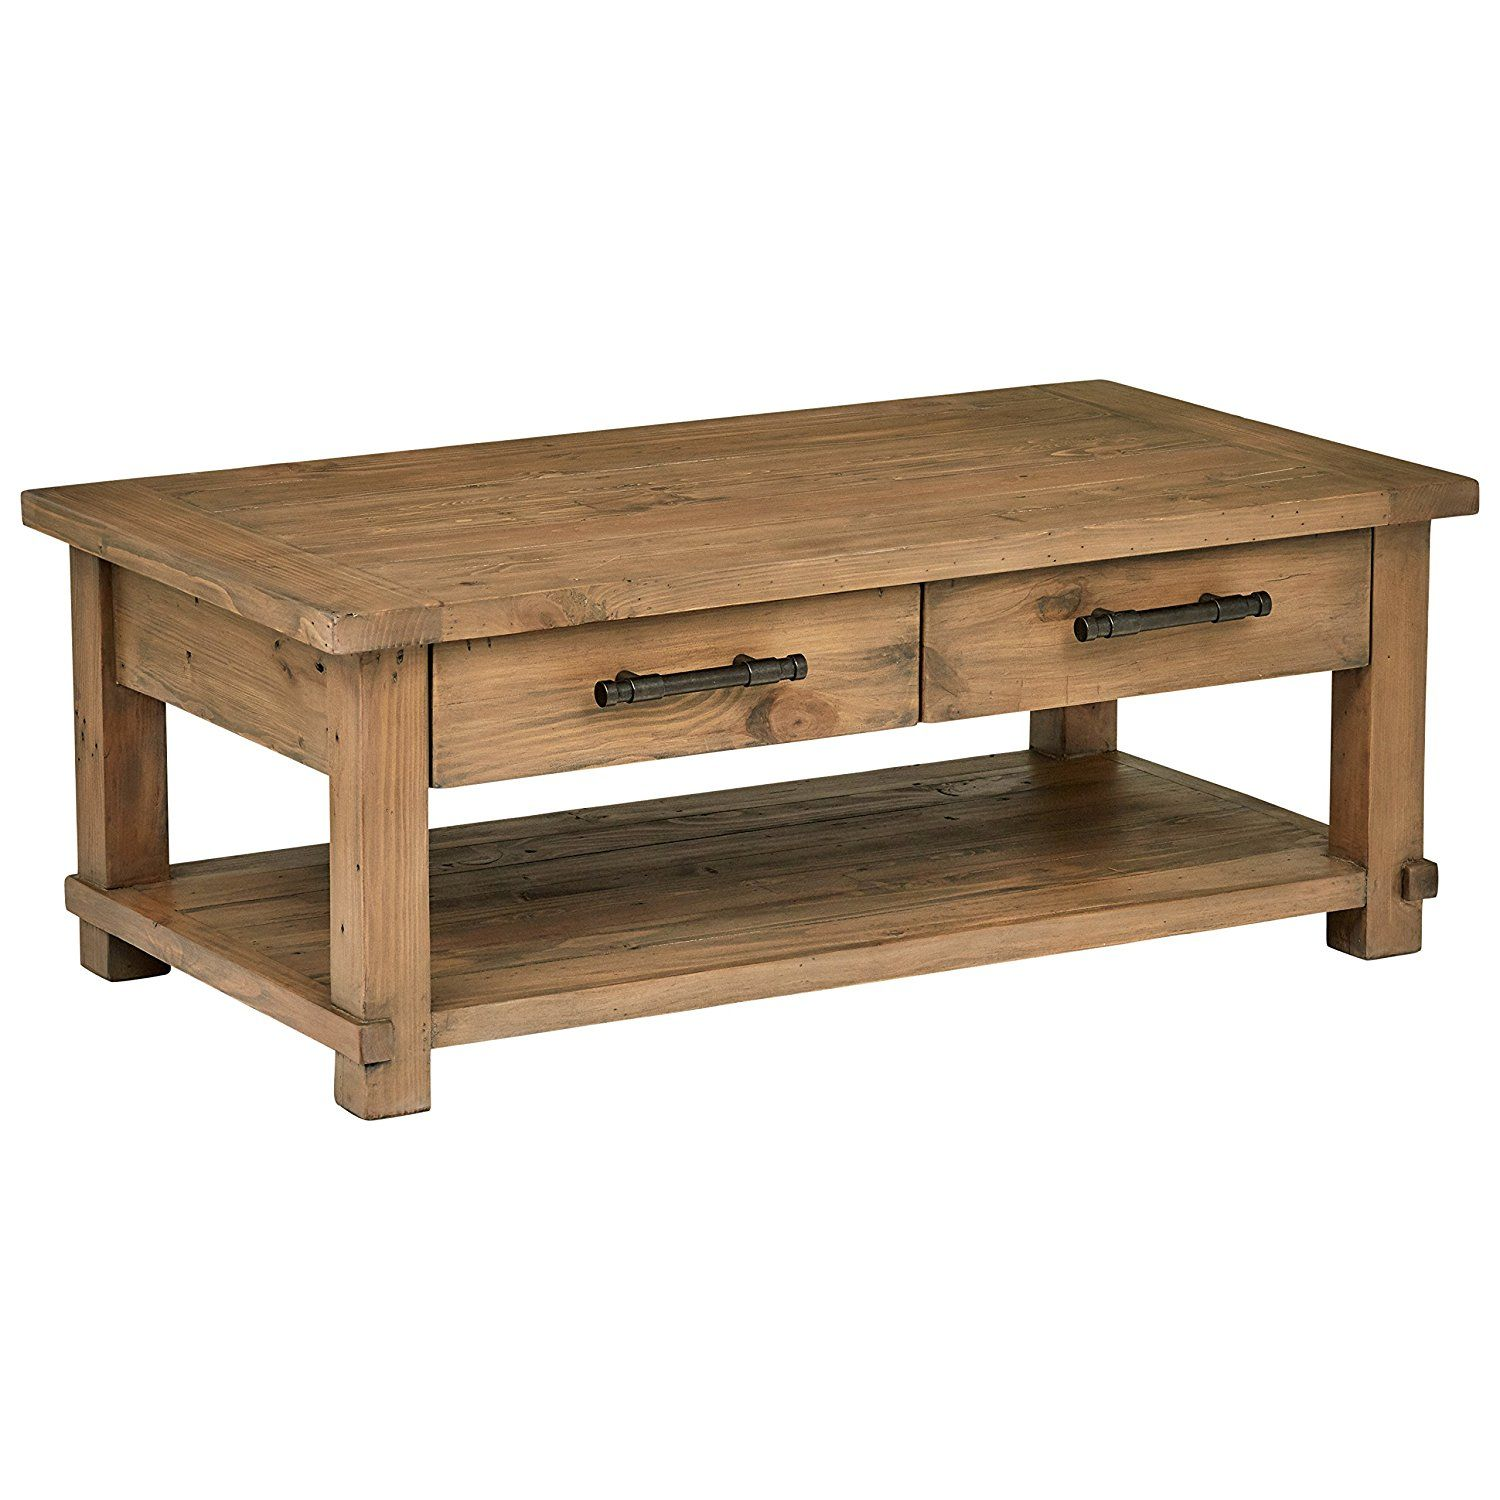 Stone & Beam Ferndale Rustic Coffee Table, 51 W, Pine